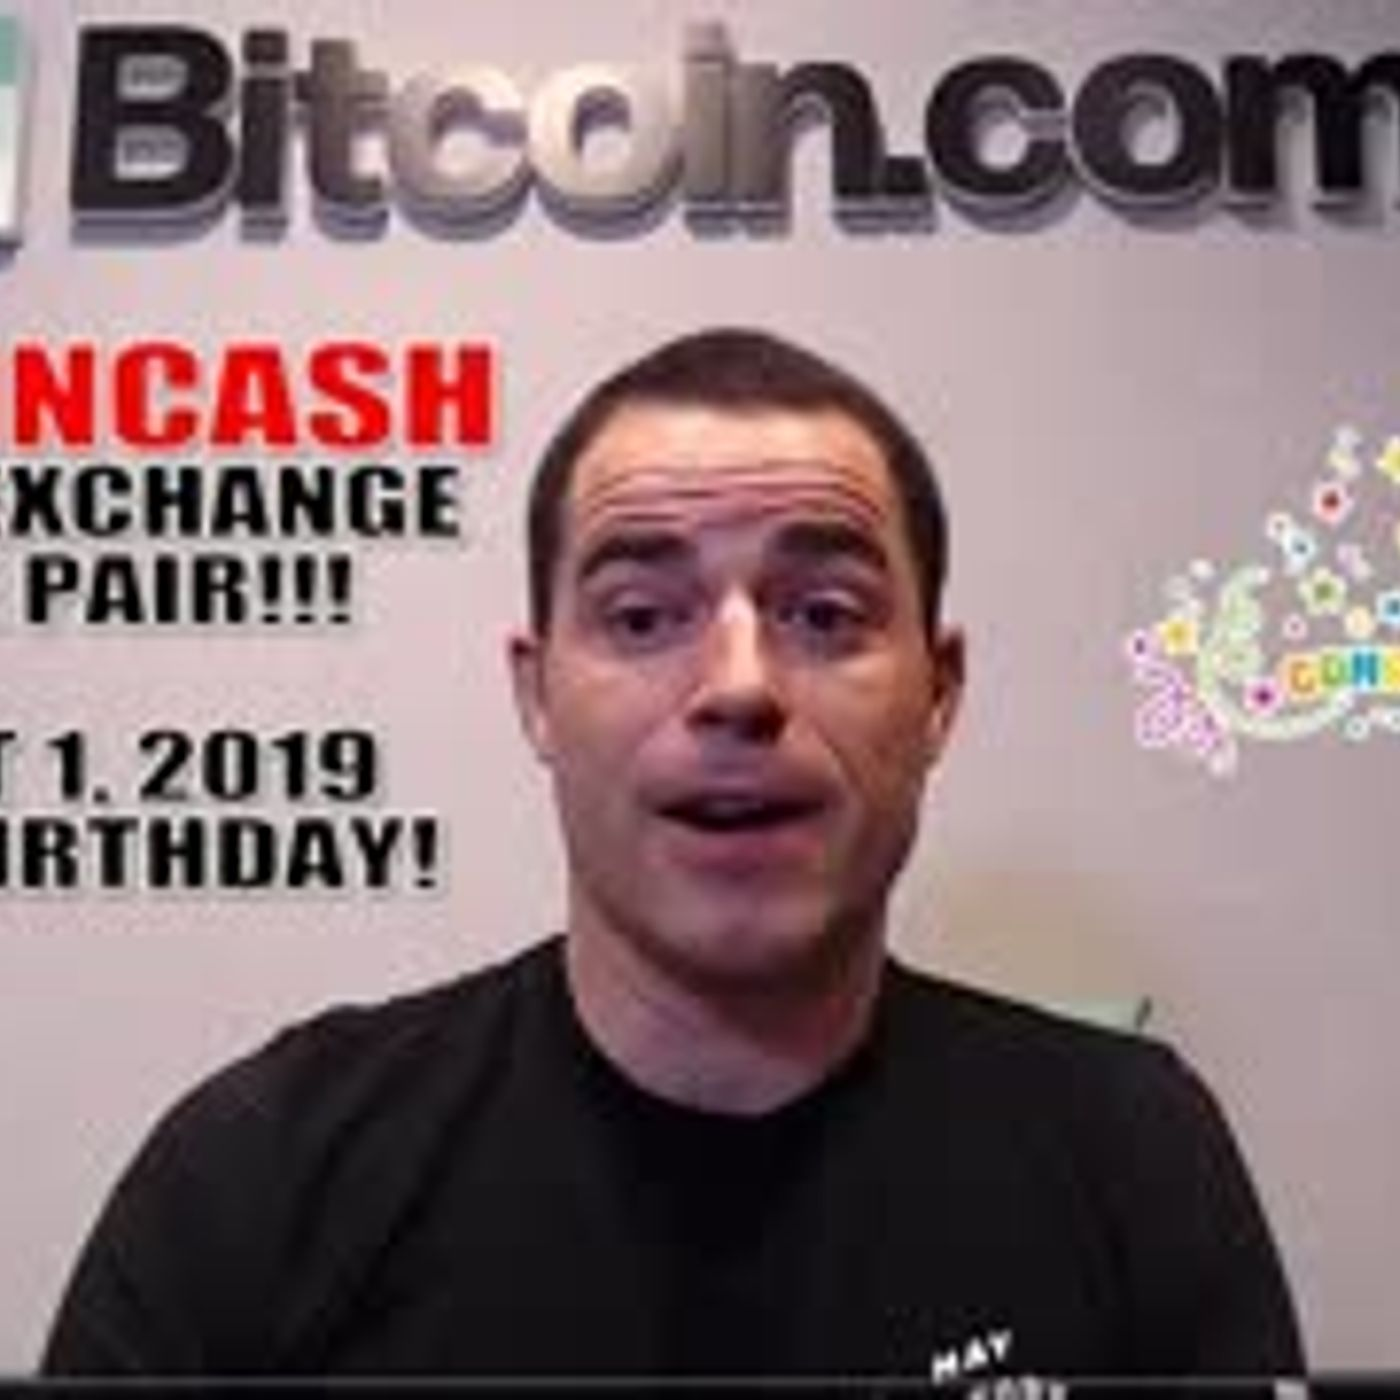 CONGRATULATIONS BITCOIN CASH [BCH] on LAUNCH OF NEW EXCHANGE AND BASE PAIRING! - BREAKING NEWS!